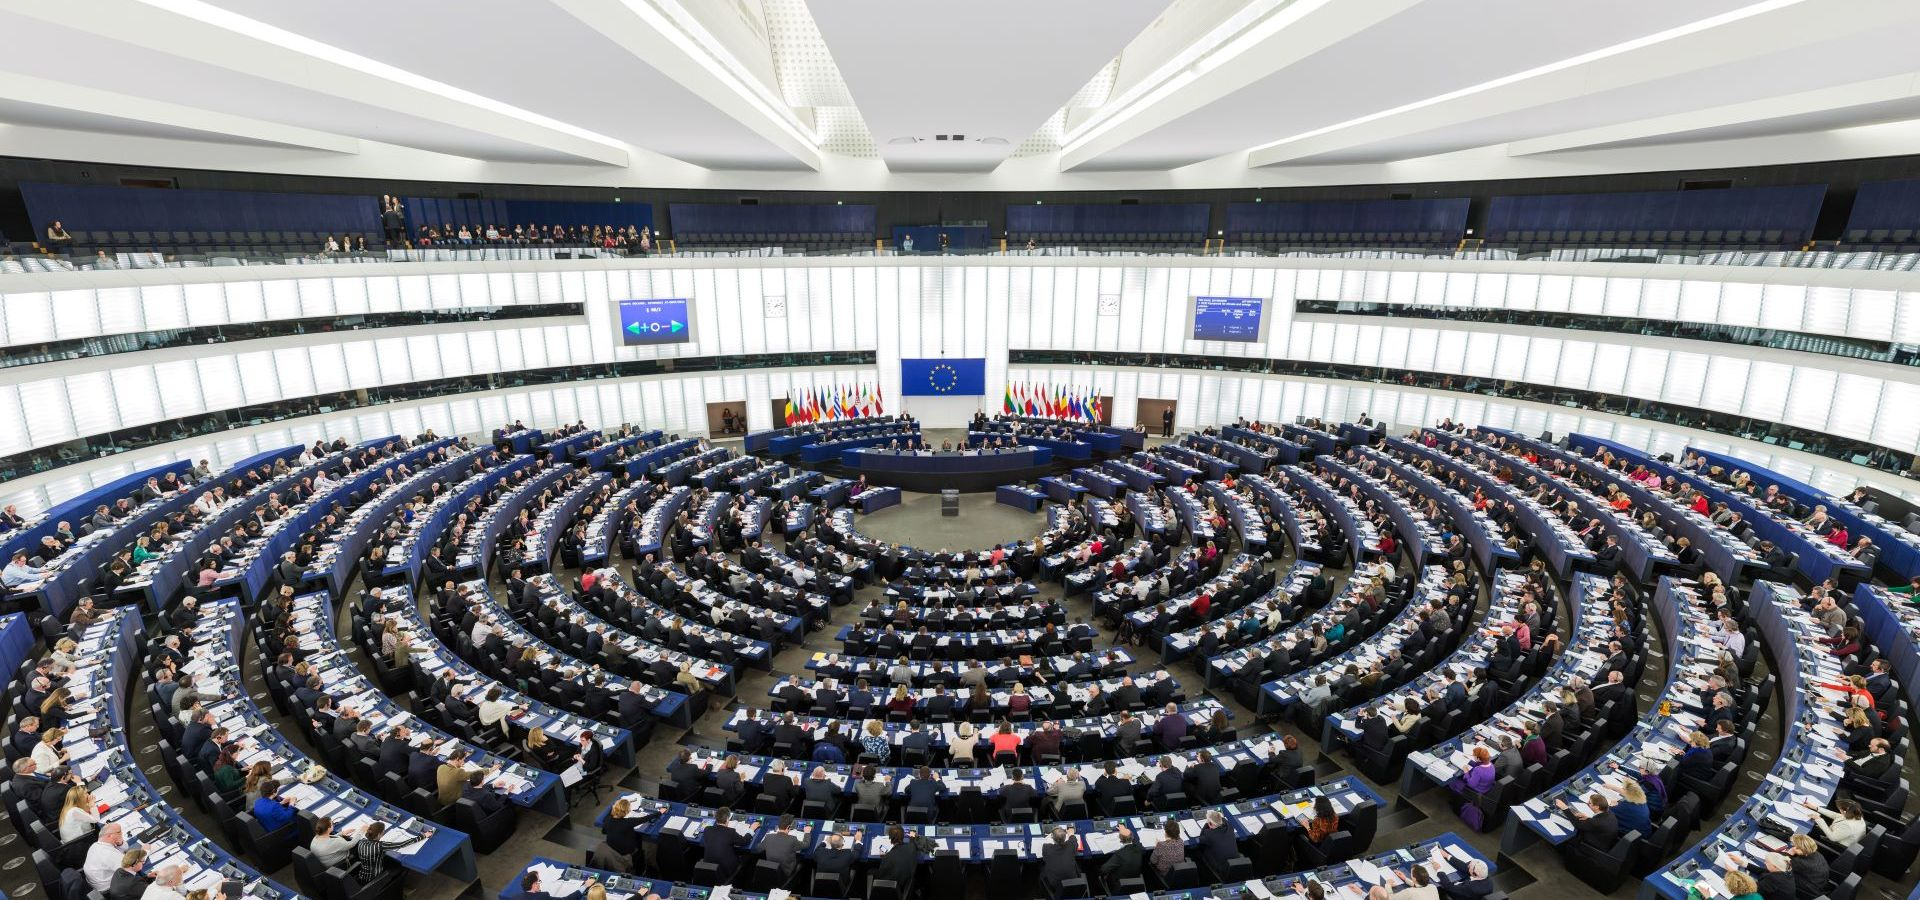 The new elections of the European Parliament could lead to a new power concentration on far right-wing parties which are likely to deny sustainable climate and energy policies